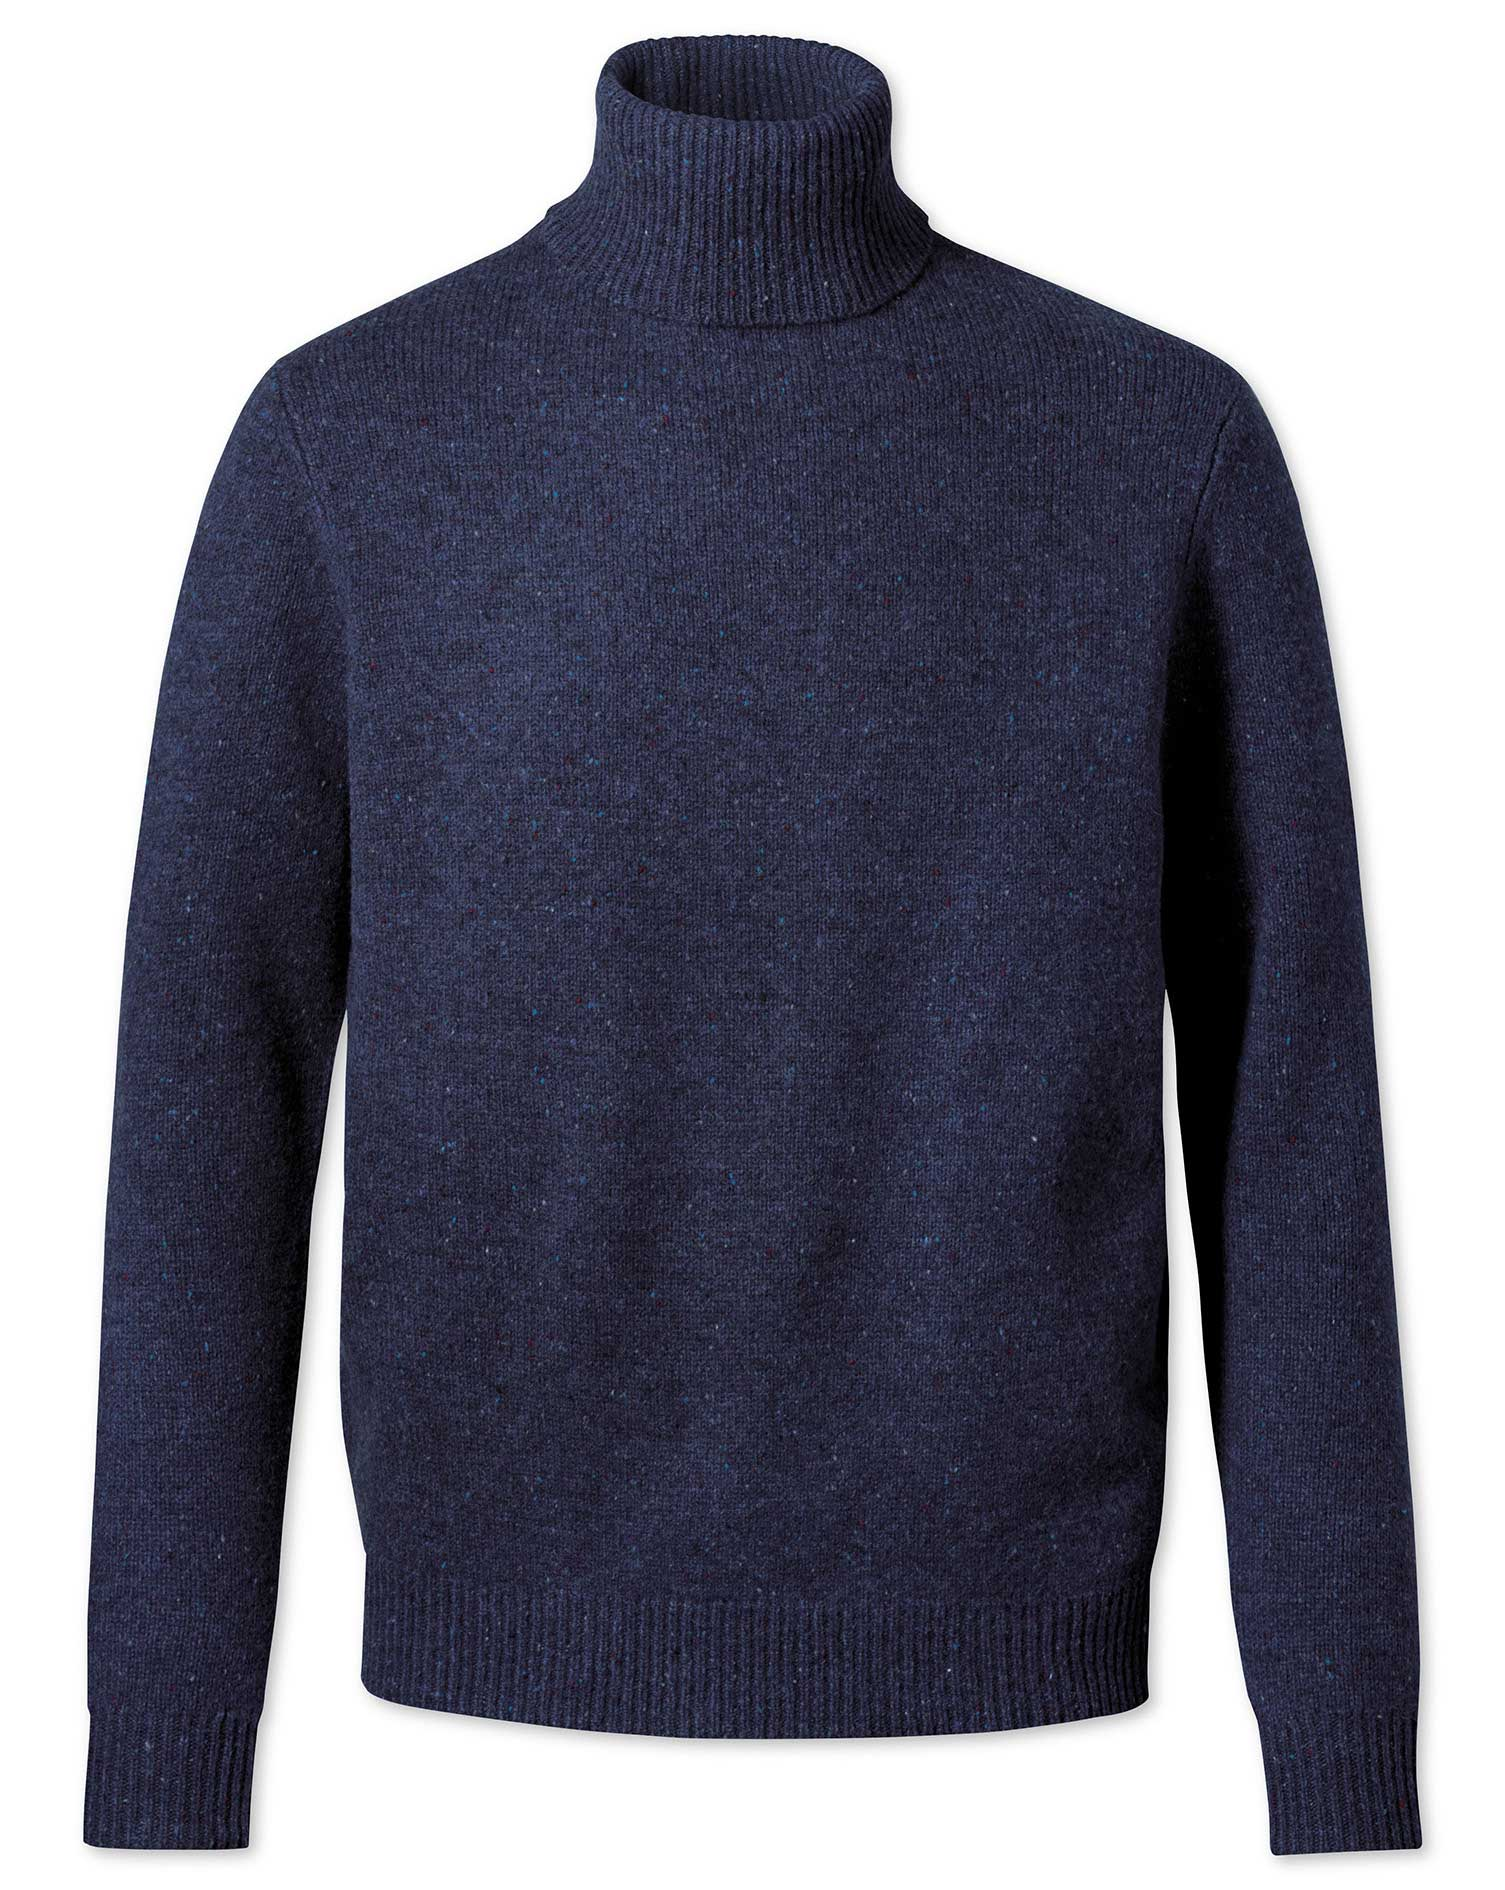 Navy Roll Neck Donegal Merino Wool Jumper Size XXXL by Charles Tyrwhitt